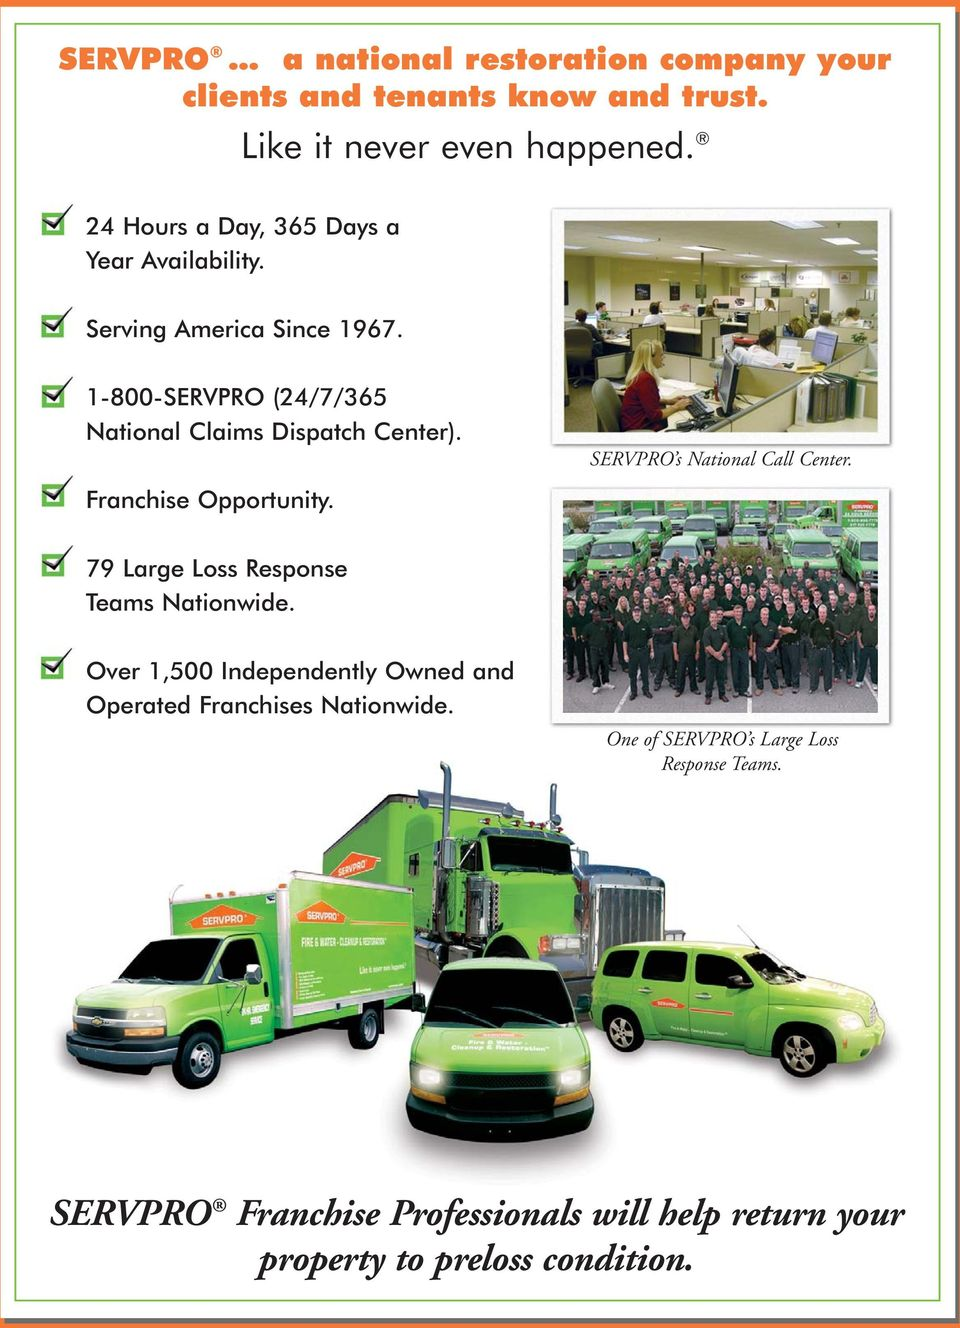 SERVPRO s National Call Center. Franchise Opportunity. 79 Large Loss Response Teams Nationwide.